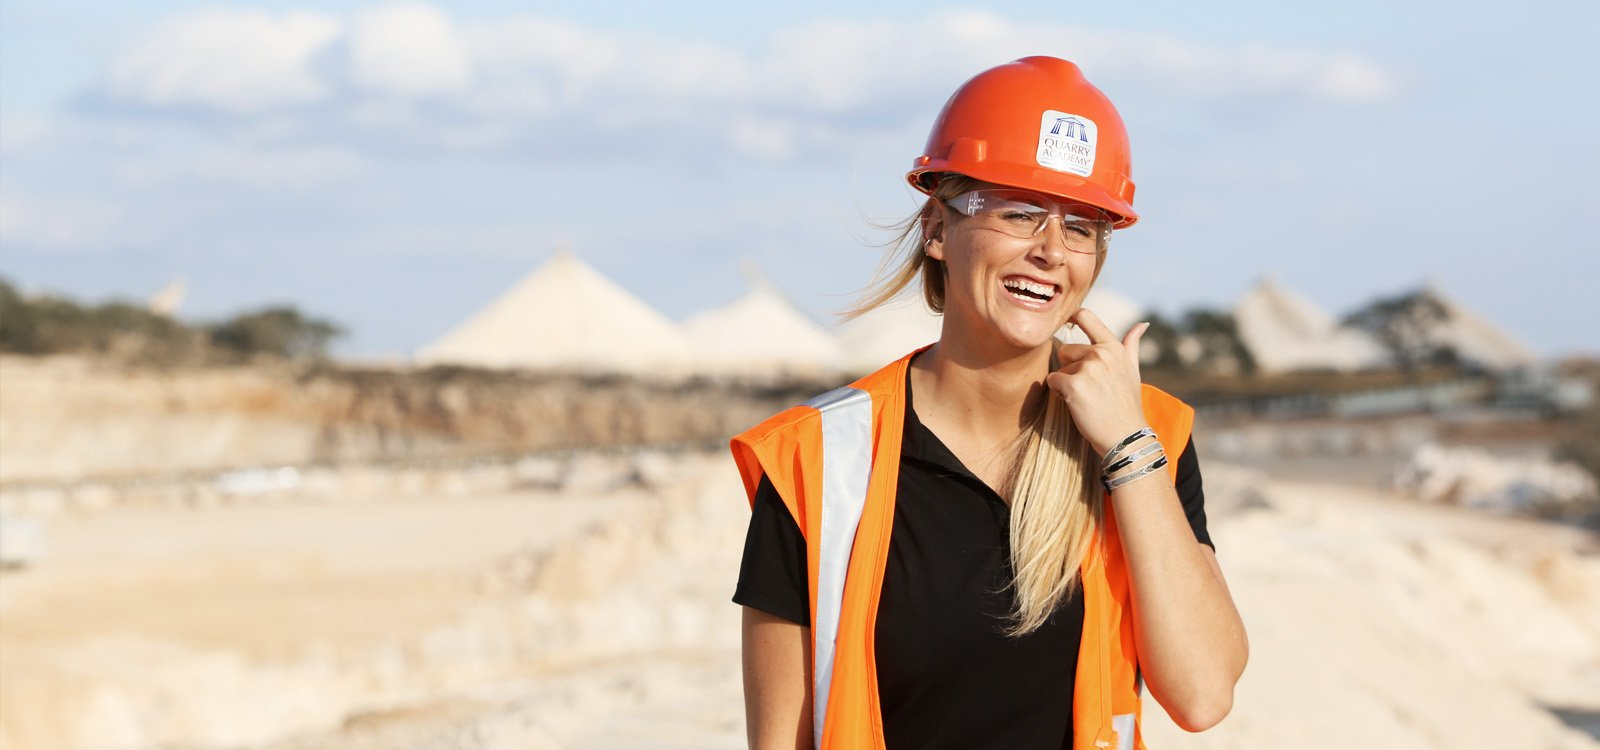 <p>The PEXCO Company's Justine Sorensen, one of the many attendees at the 2016 Quarry Academy, took away valuable lessons on improving process efficiency for producing aggregates in a safe environment.</p>